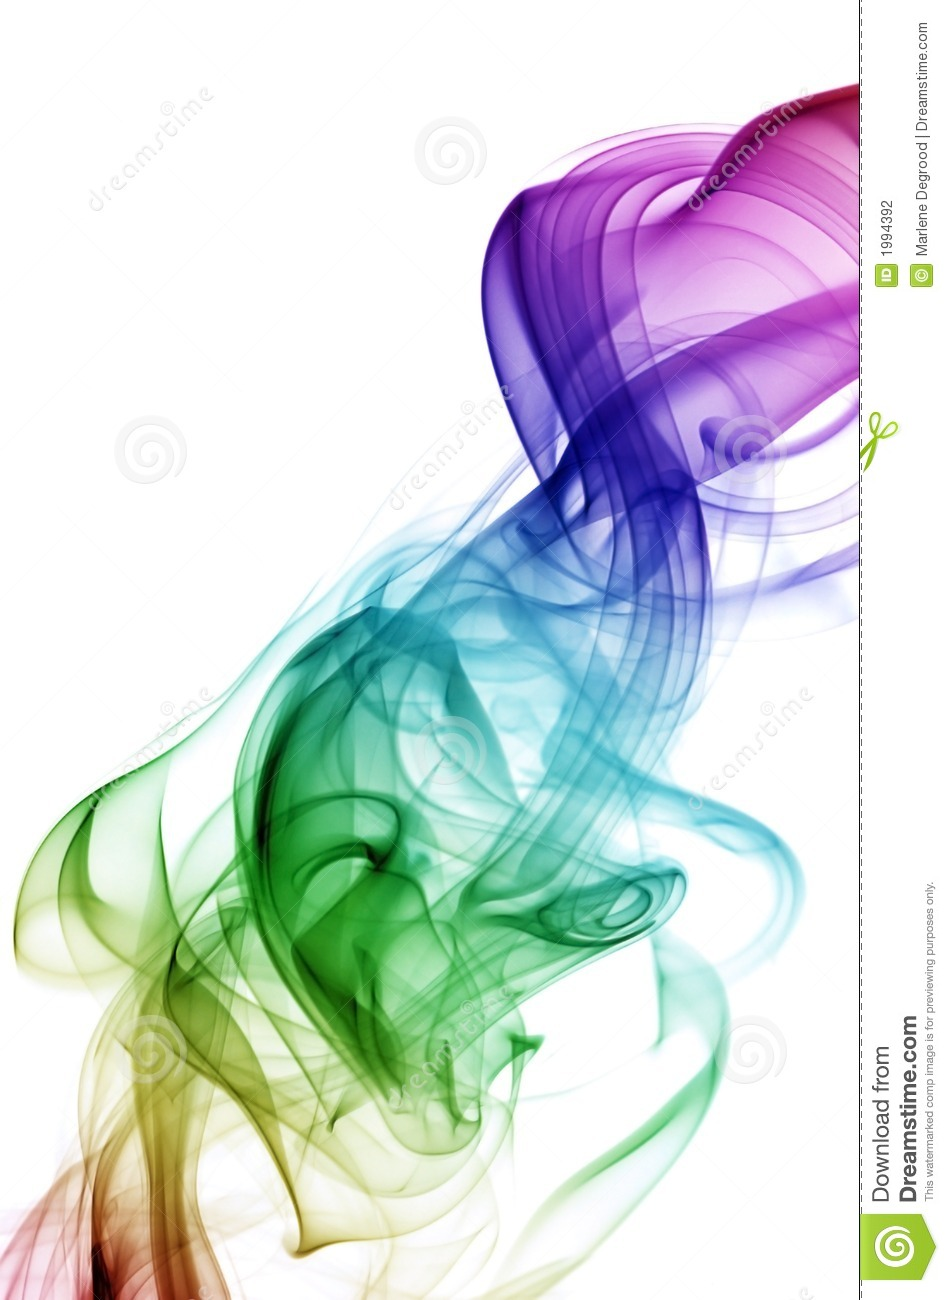 Diagonal flowing smoke in rainbow colors against white background.